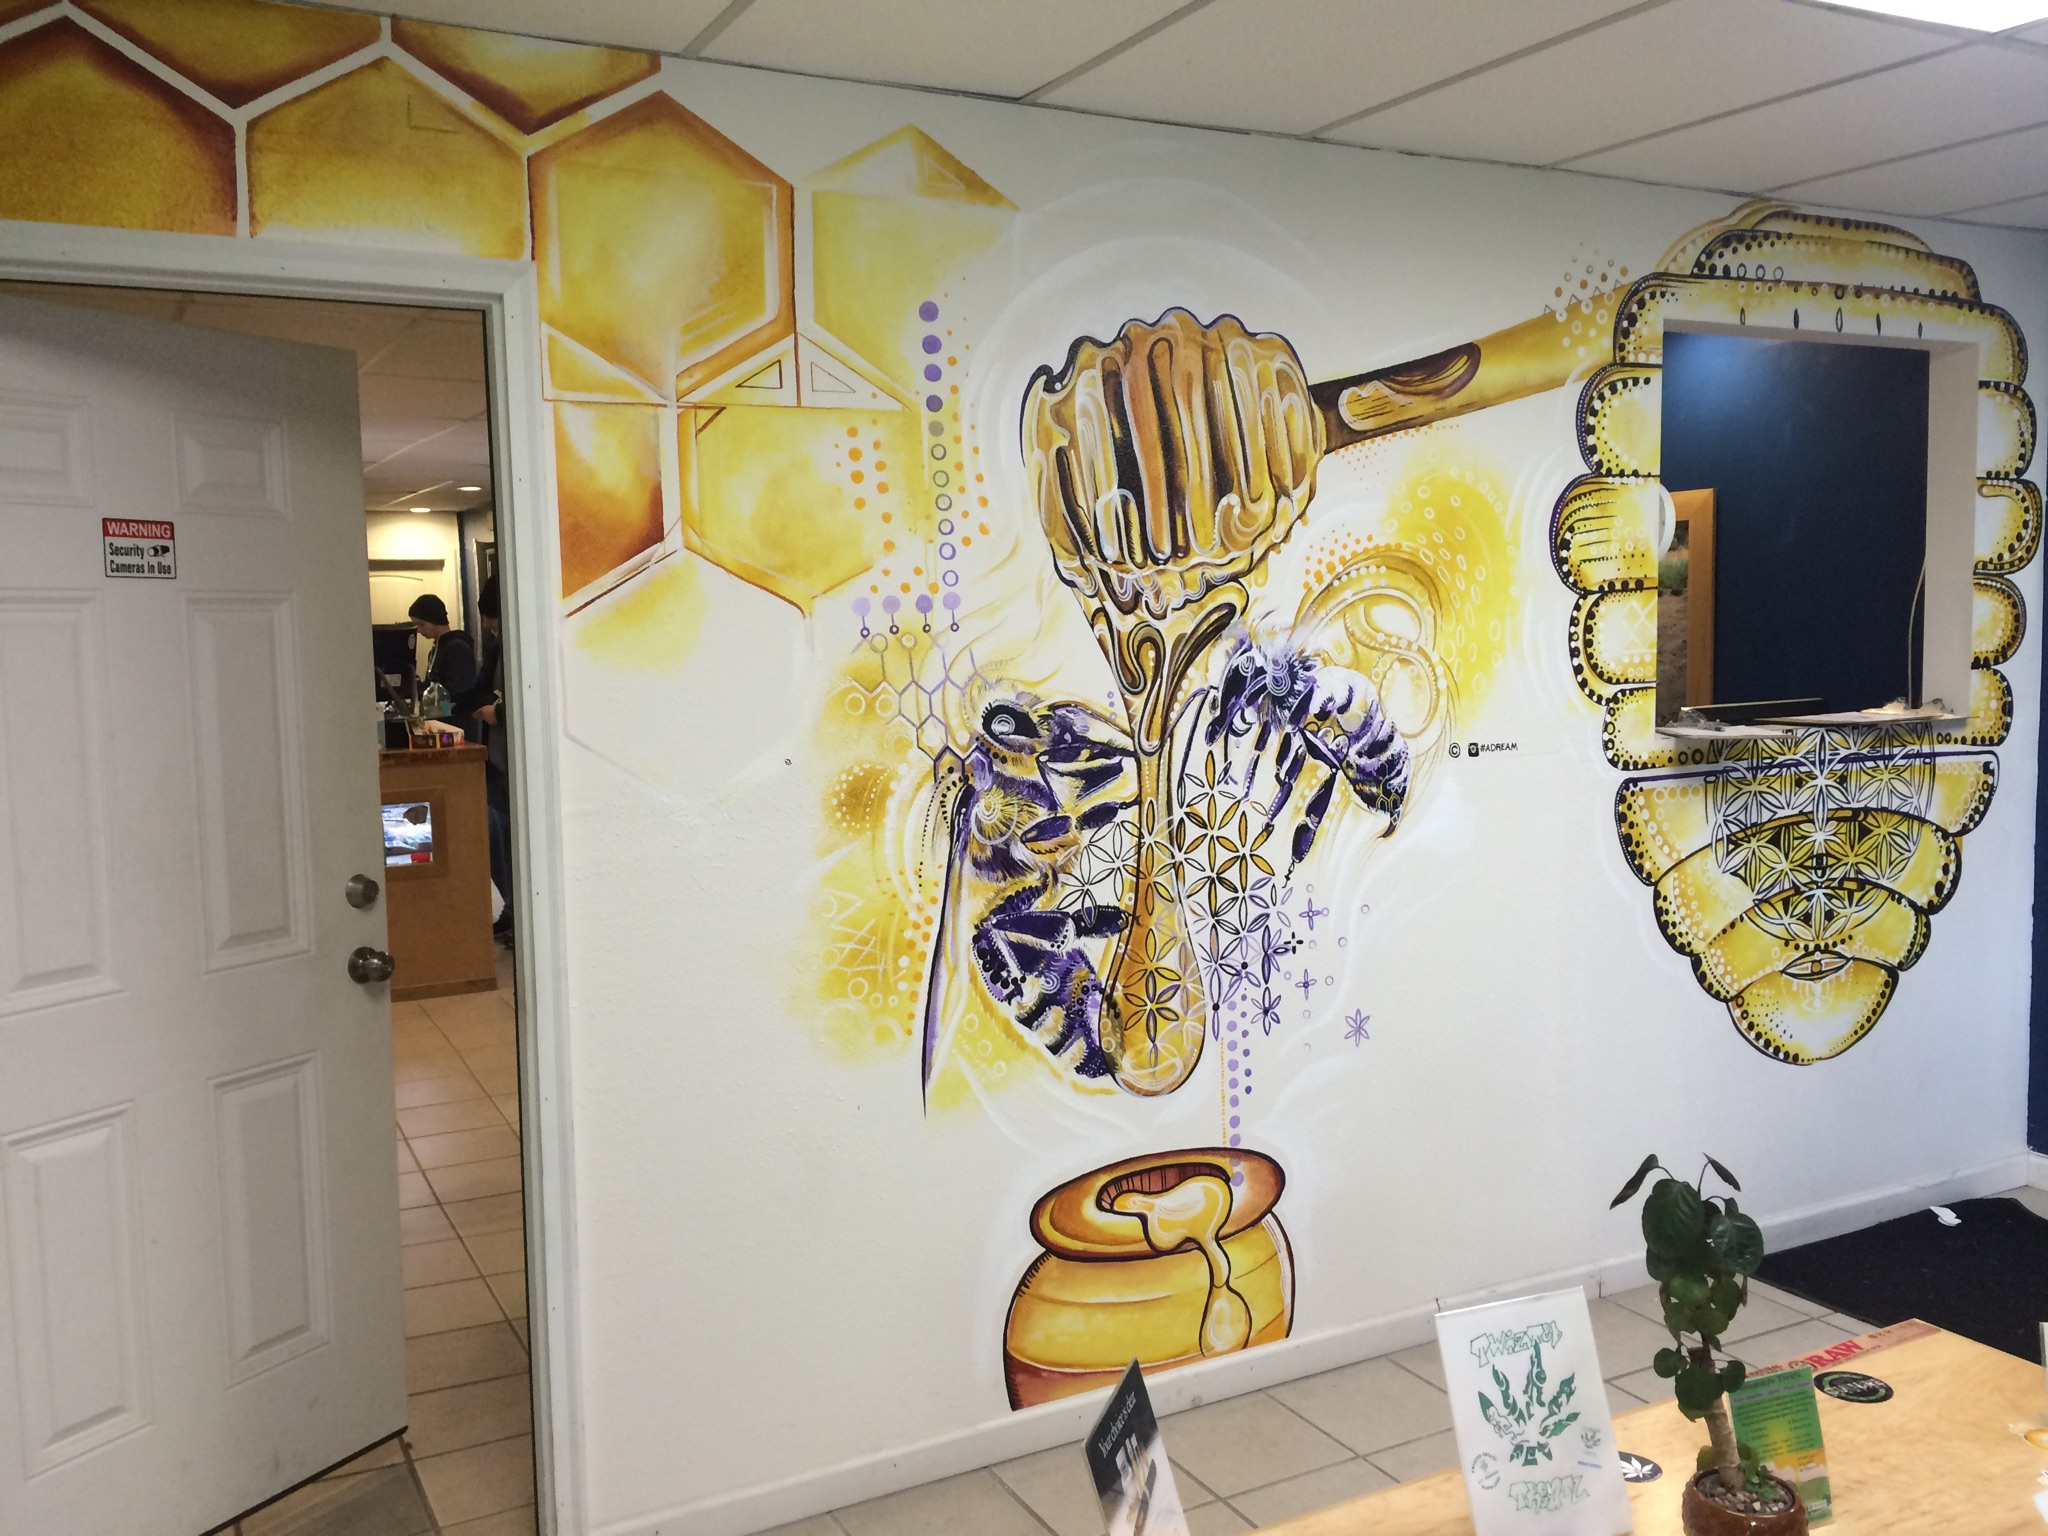 Washington Herbal Remedies Medical Marijuana Dispensary in Lynwood, Washington